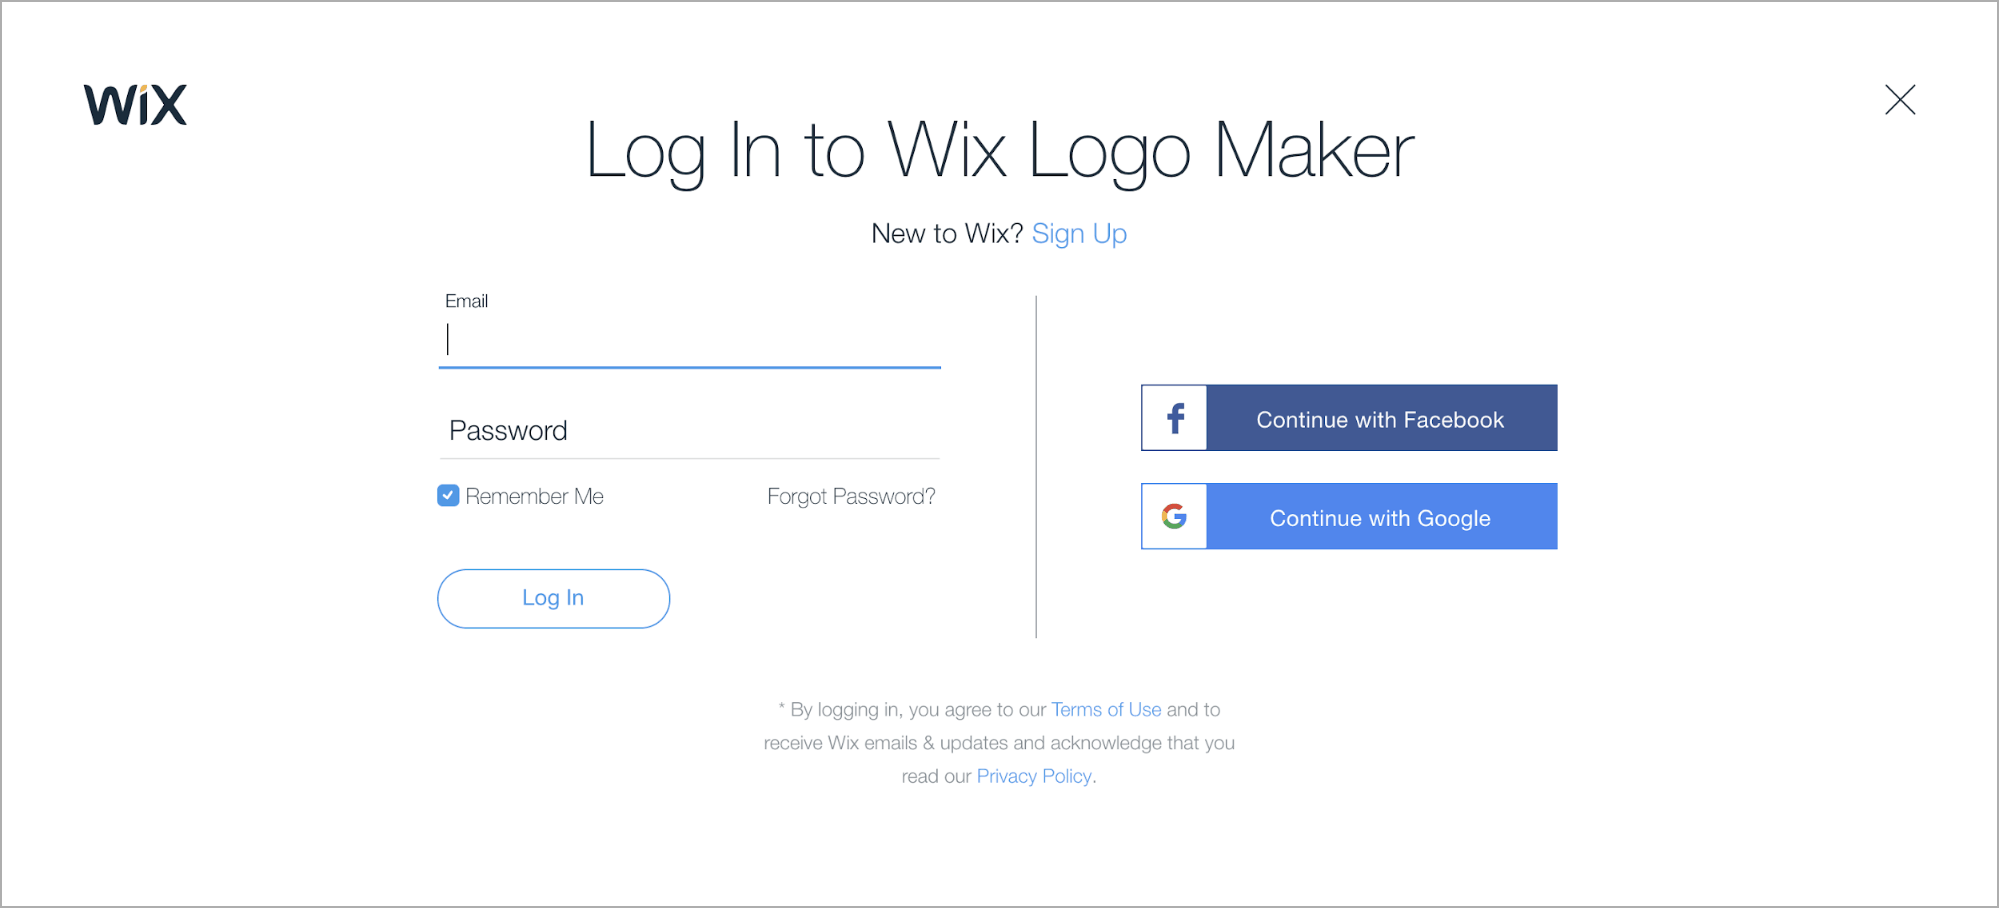 Wix Logo Maker screenshot - Login